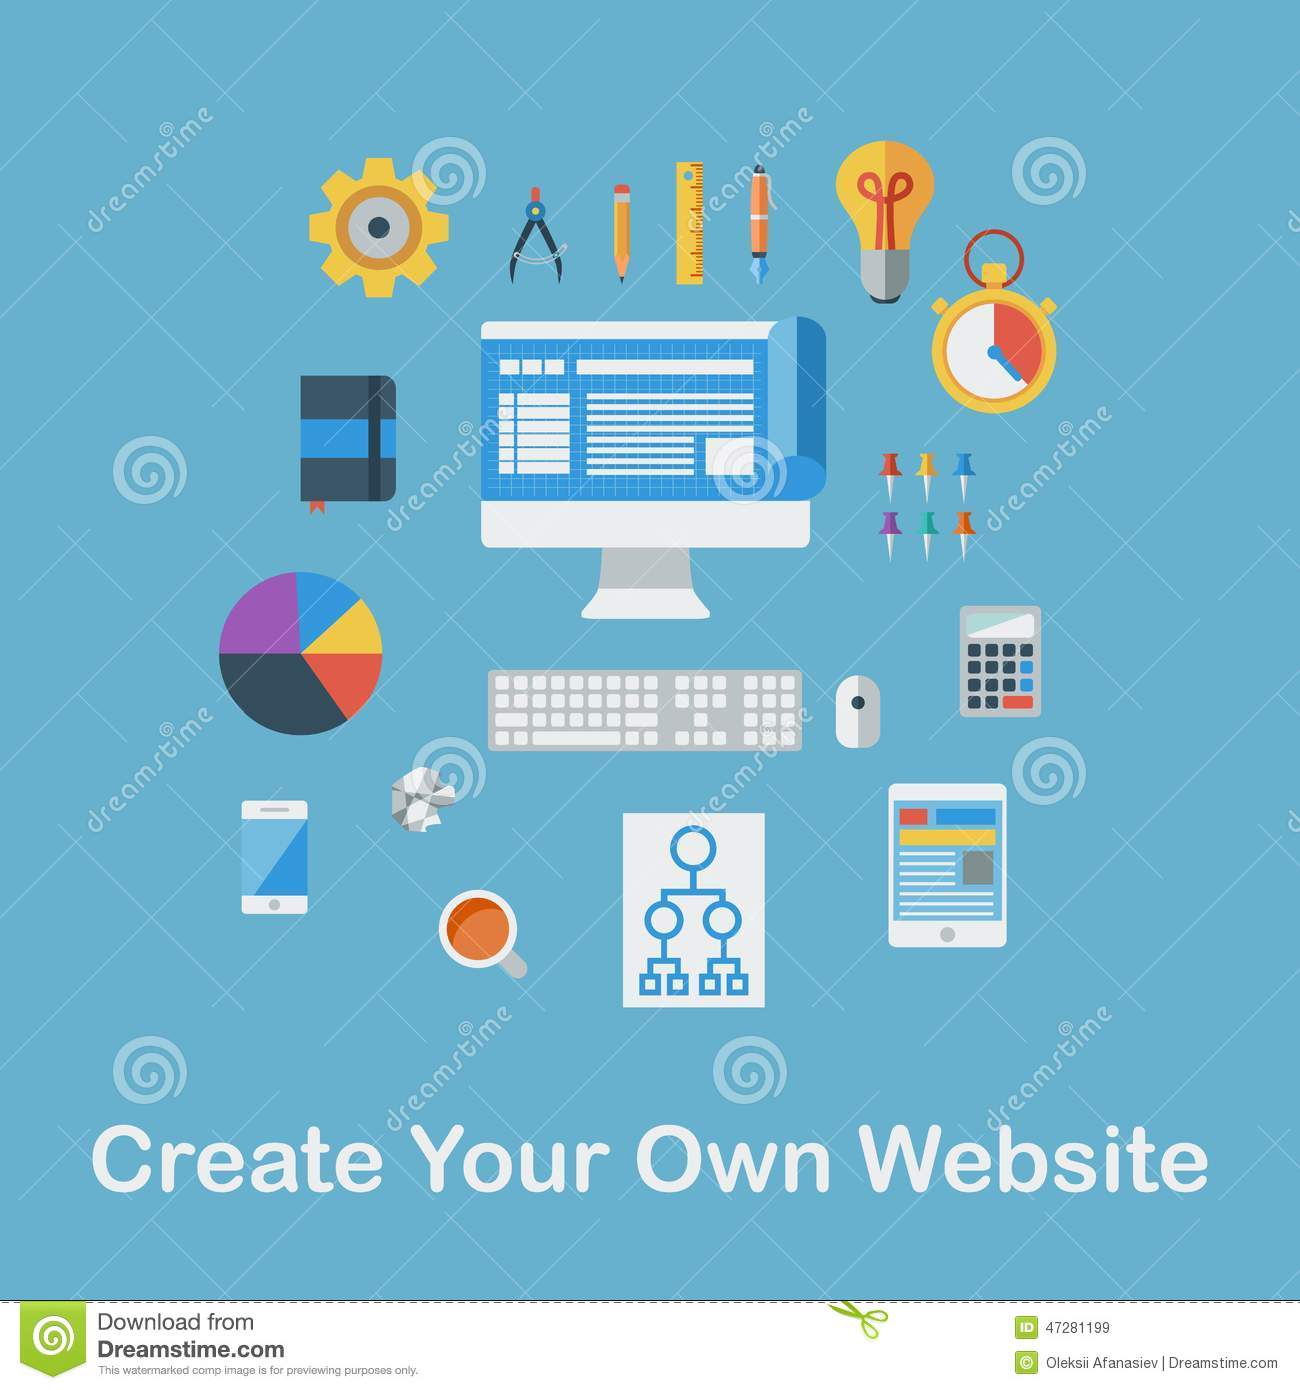 Step van create your own website How to make your own website for free